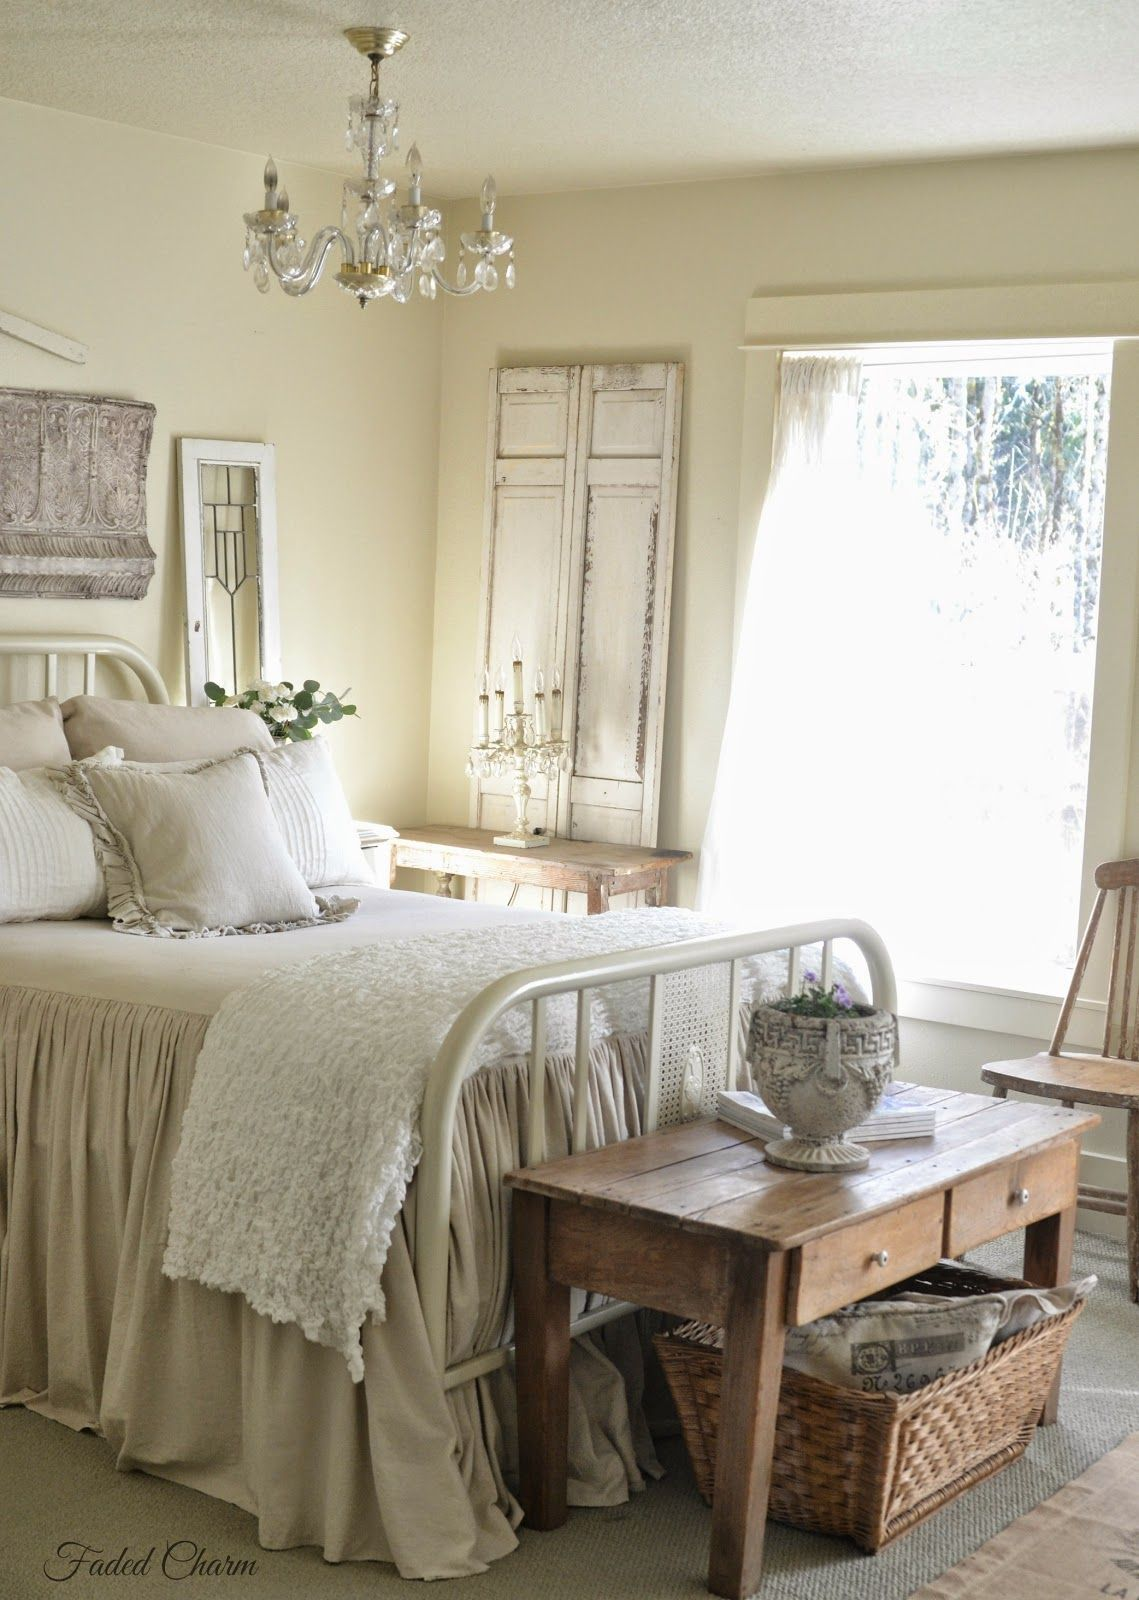 Sweet Scents In The Bedroom Shabby Chic Decor Bedroom Remodel